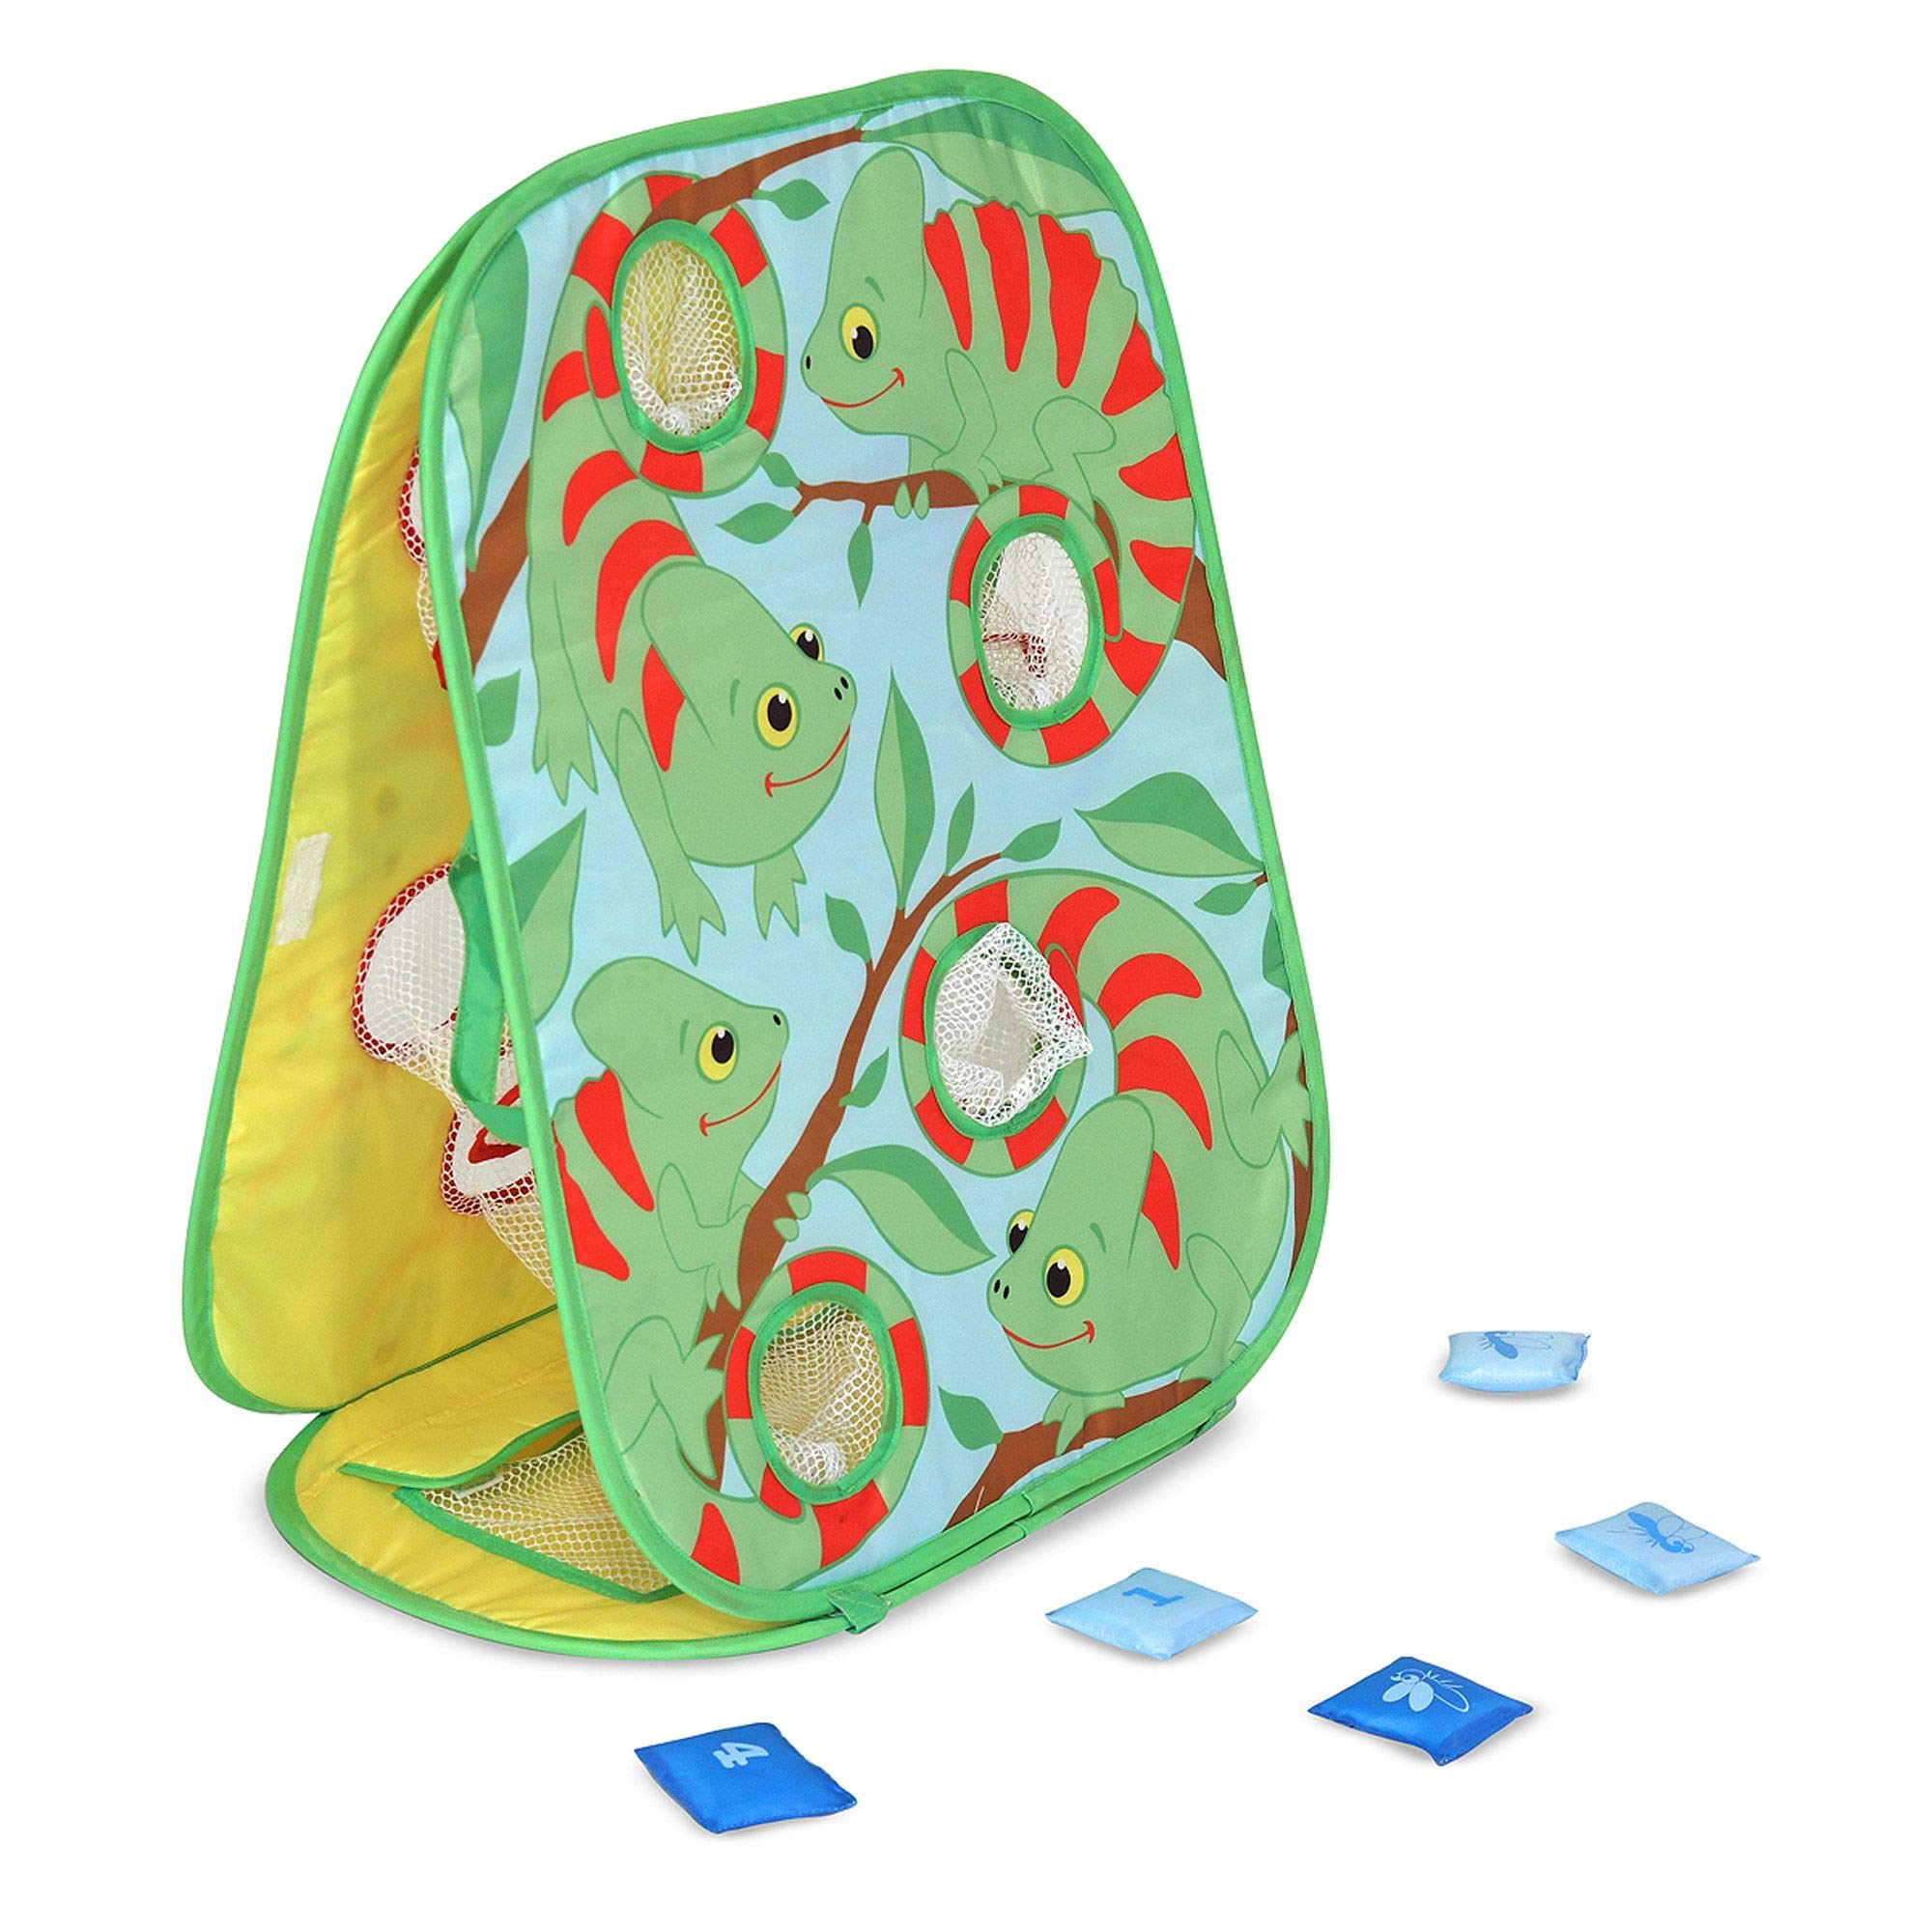 Melissa & Doug Verdie Chameleon Beanbag Toss (Active Play & Outdoor, Double Sided, Two Challenging Games, 8 Pieces, 24.7'' H x 19.7'' W x 0.4'' L) by Melissa & Doug